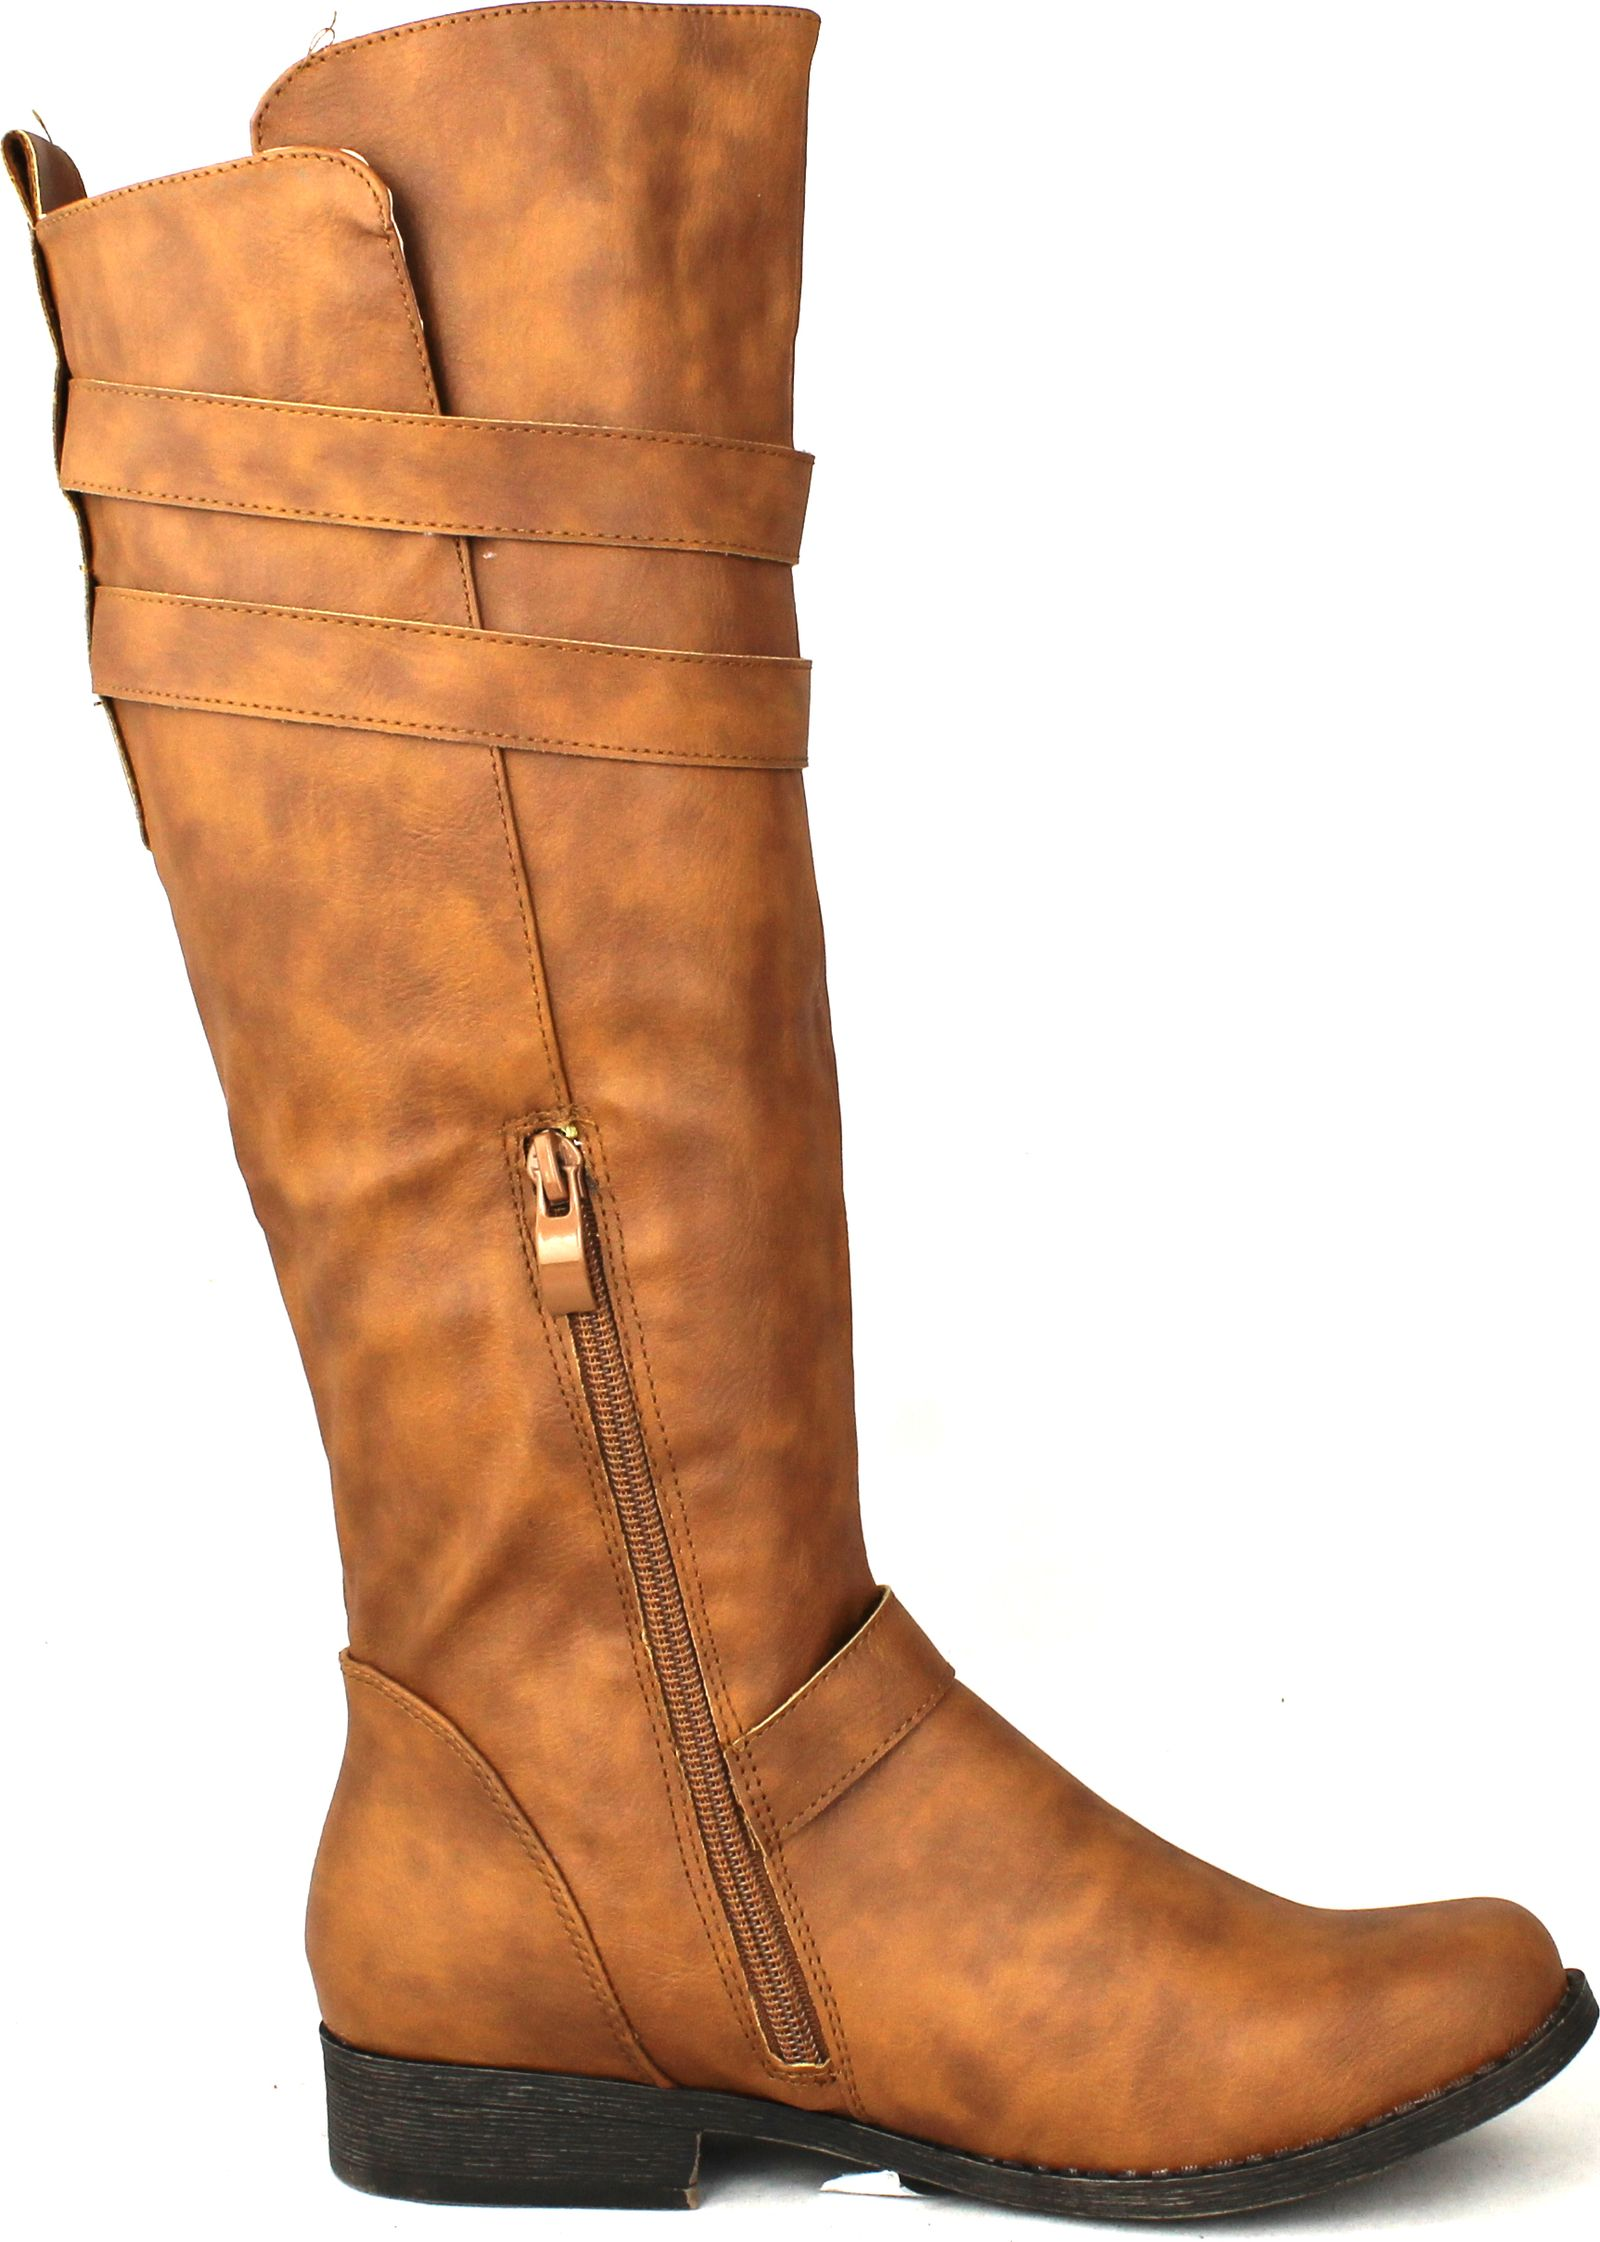 Perfect Top 10 Best Riding Boots 2018 - Top Rated Womenu0026#39;s Riding Boot Reviews